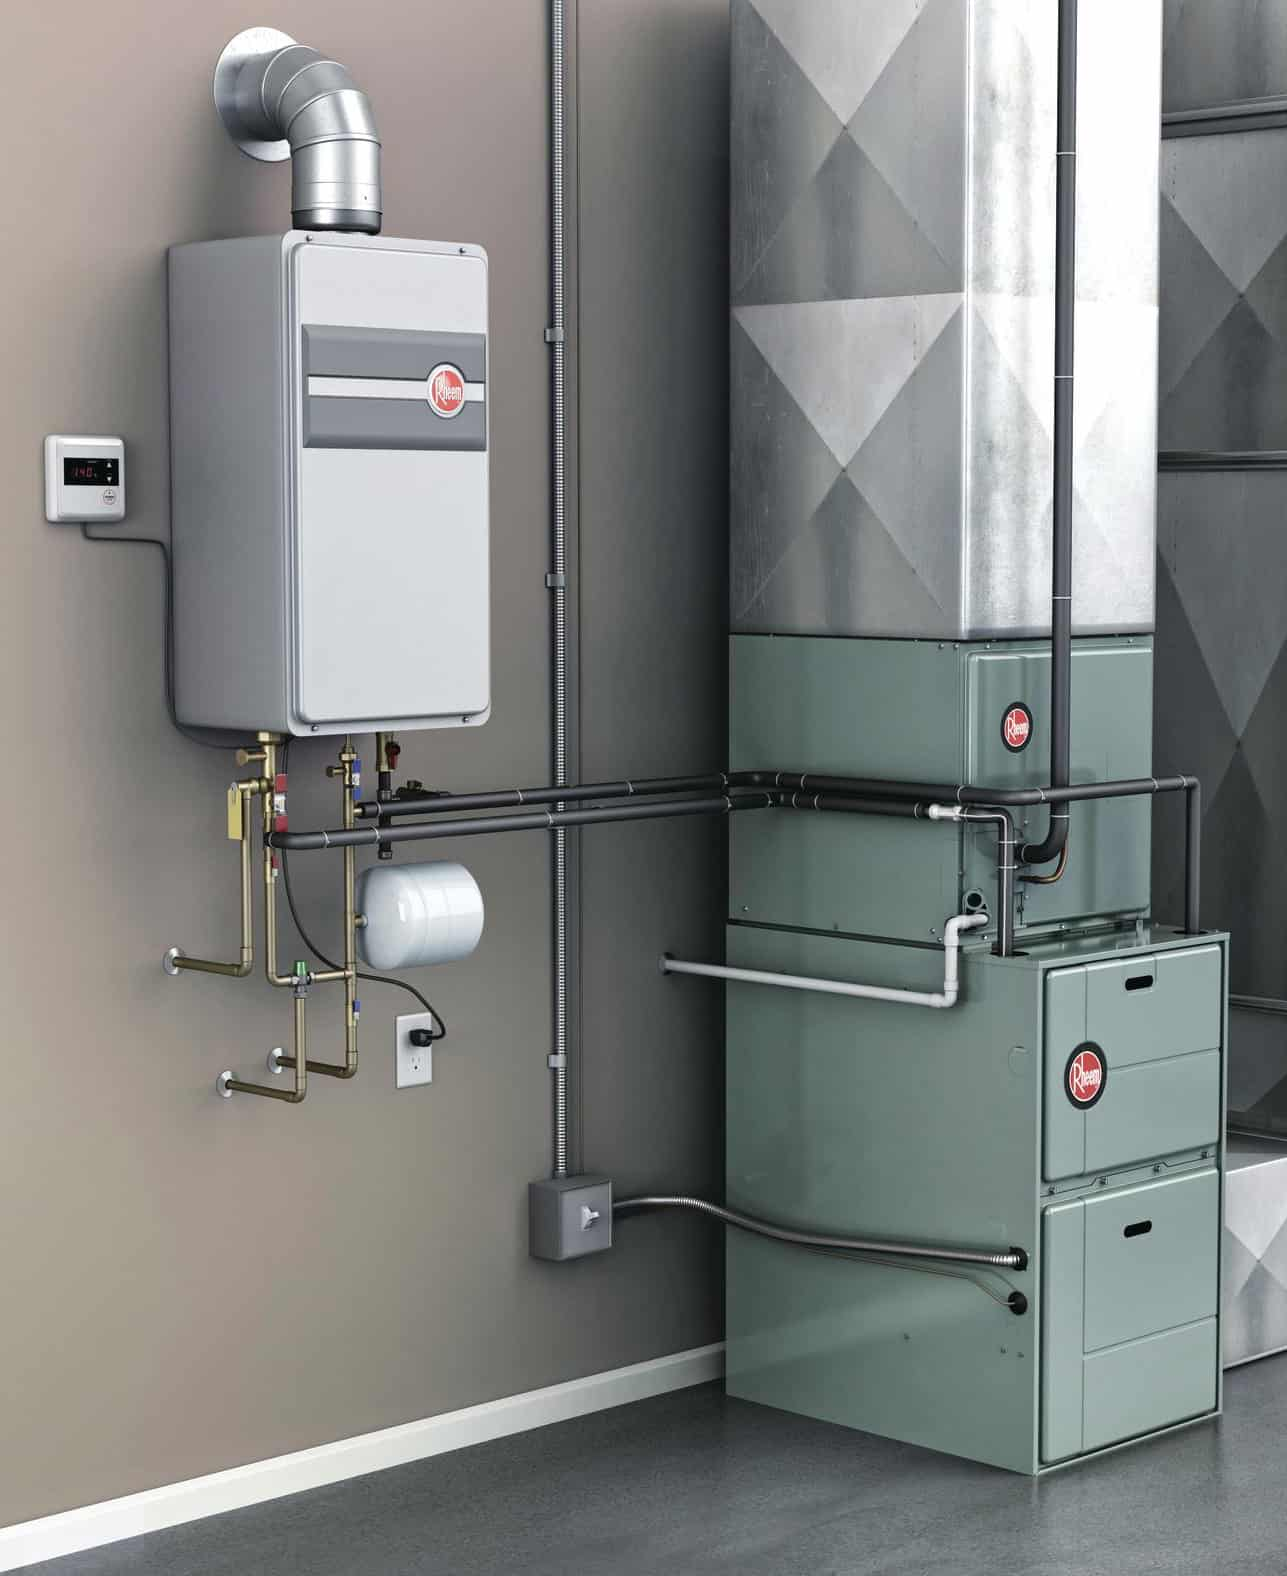 rheem water heater review